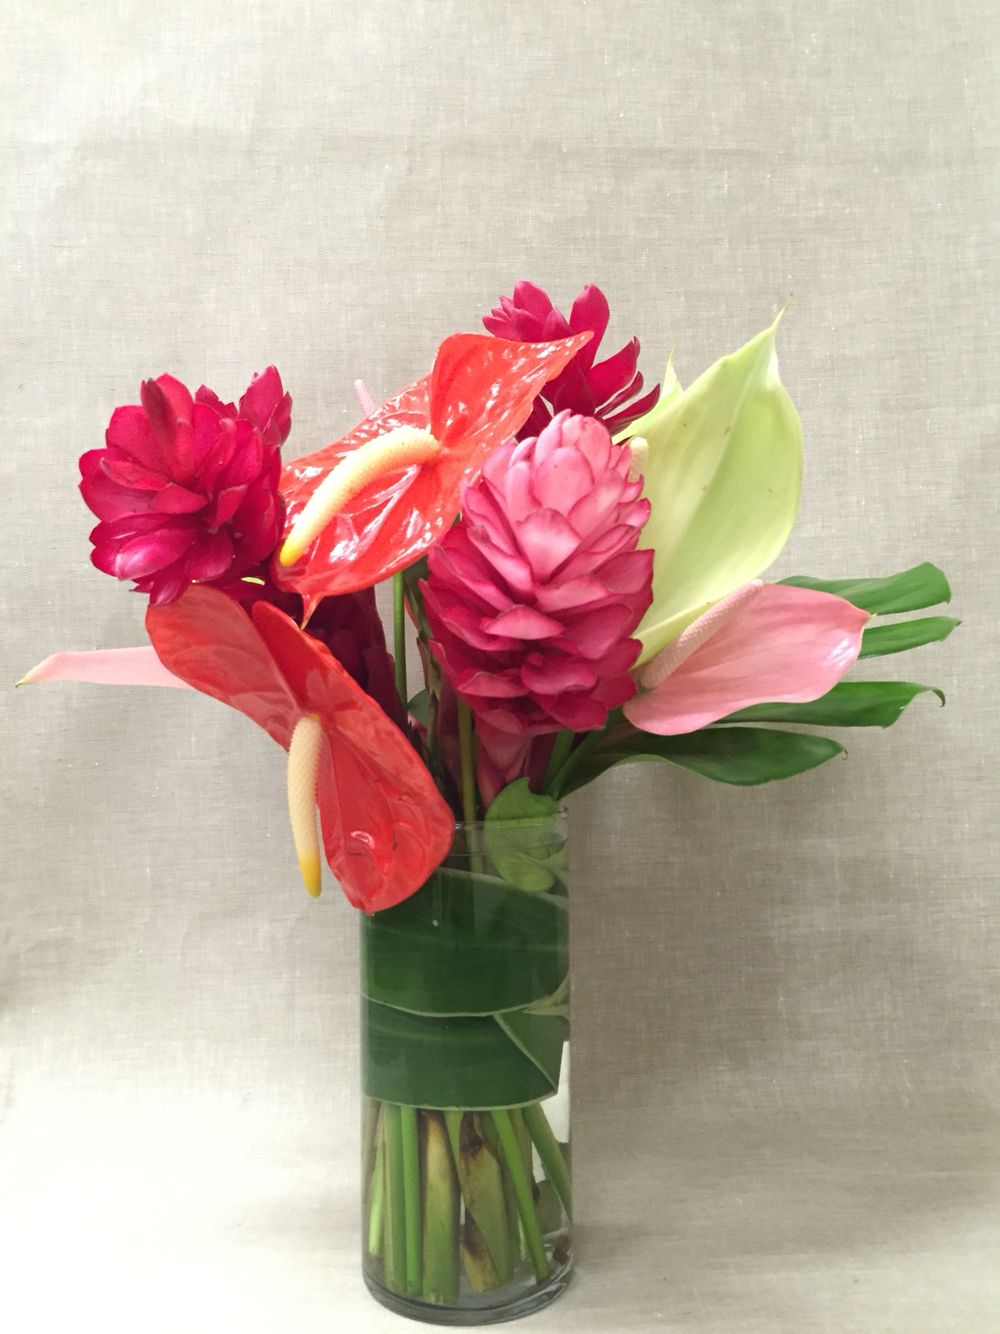 Red pink ginger coral anthurium bright tropical wedding